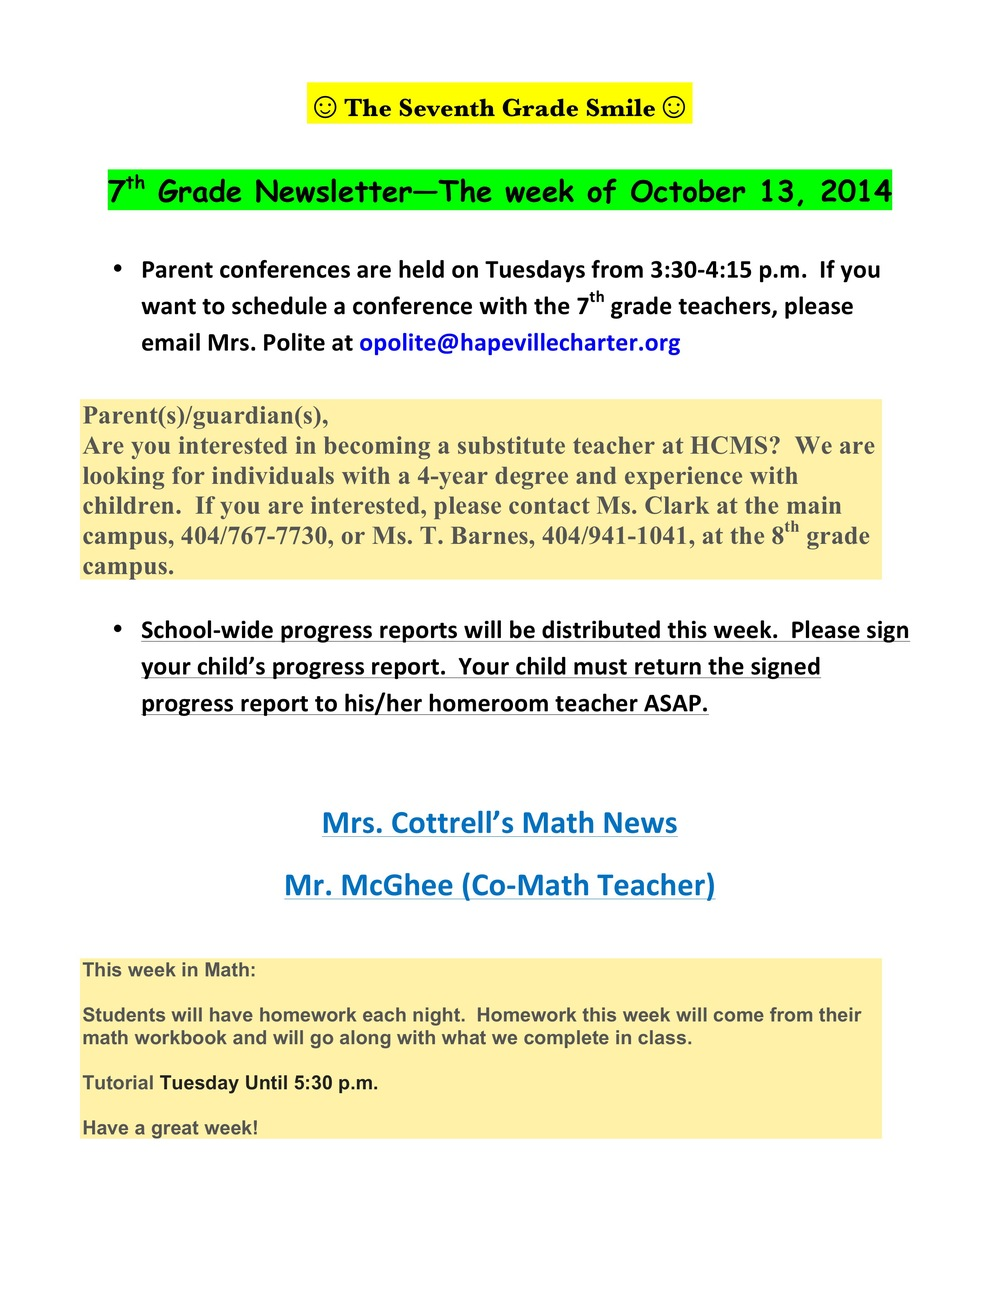 Newsletter Image7th grade October 13th 2014.jpeg